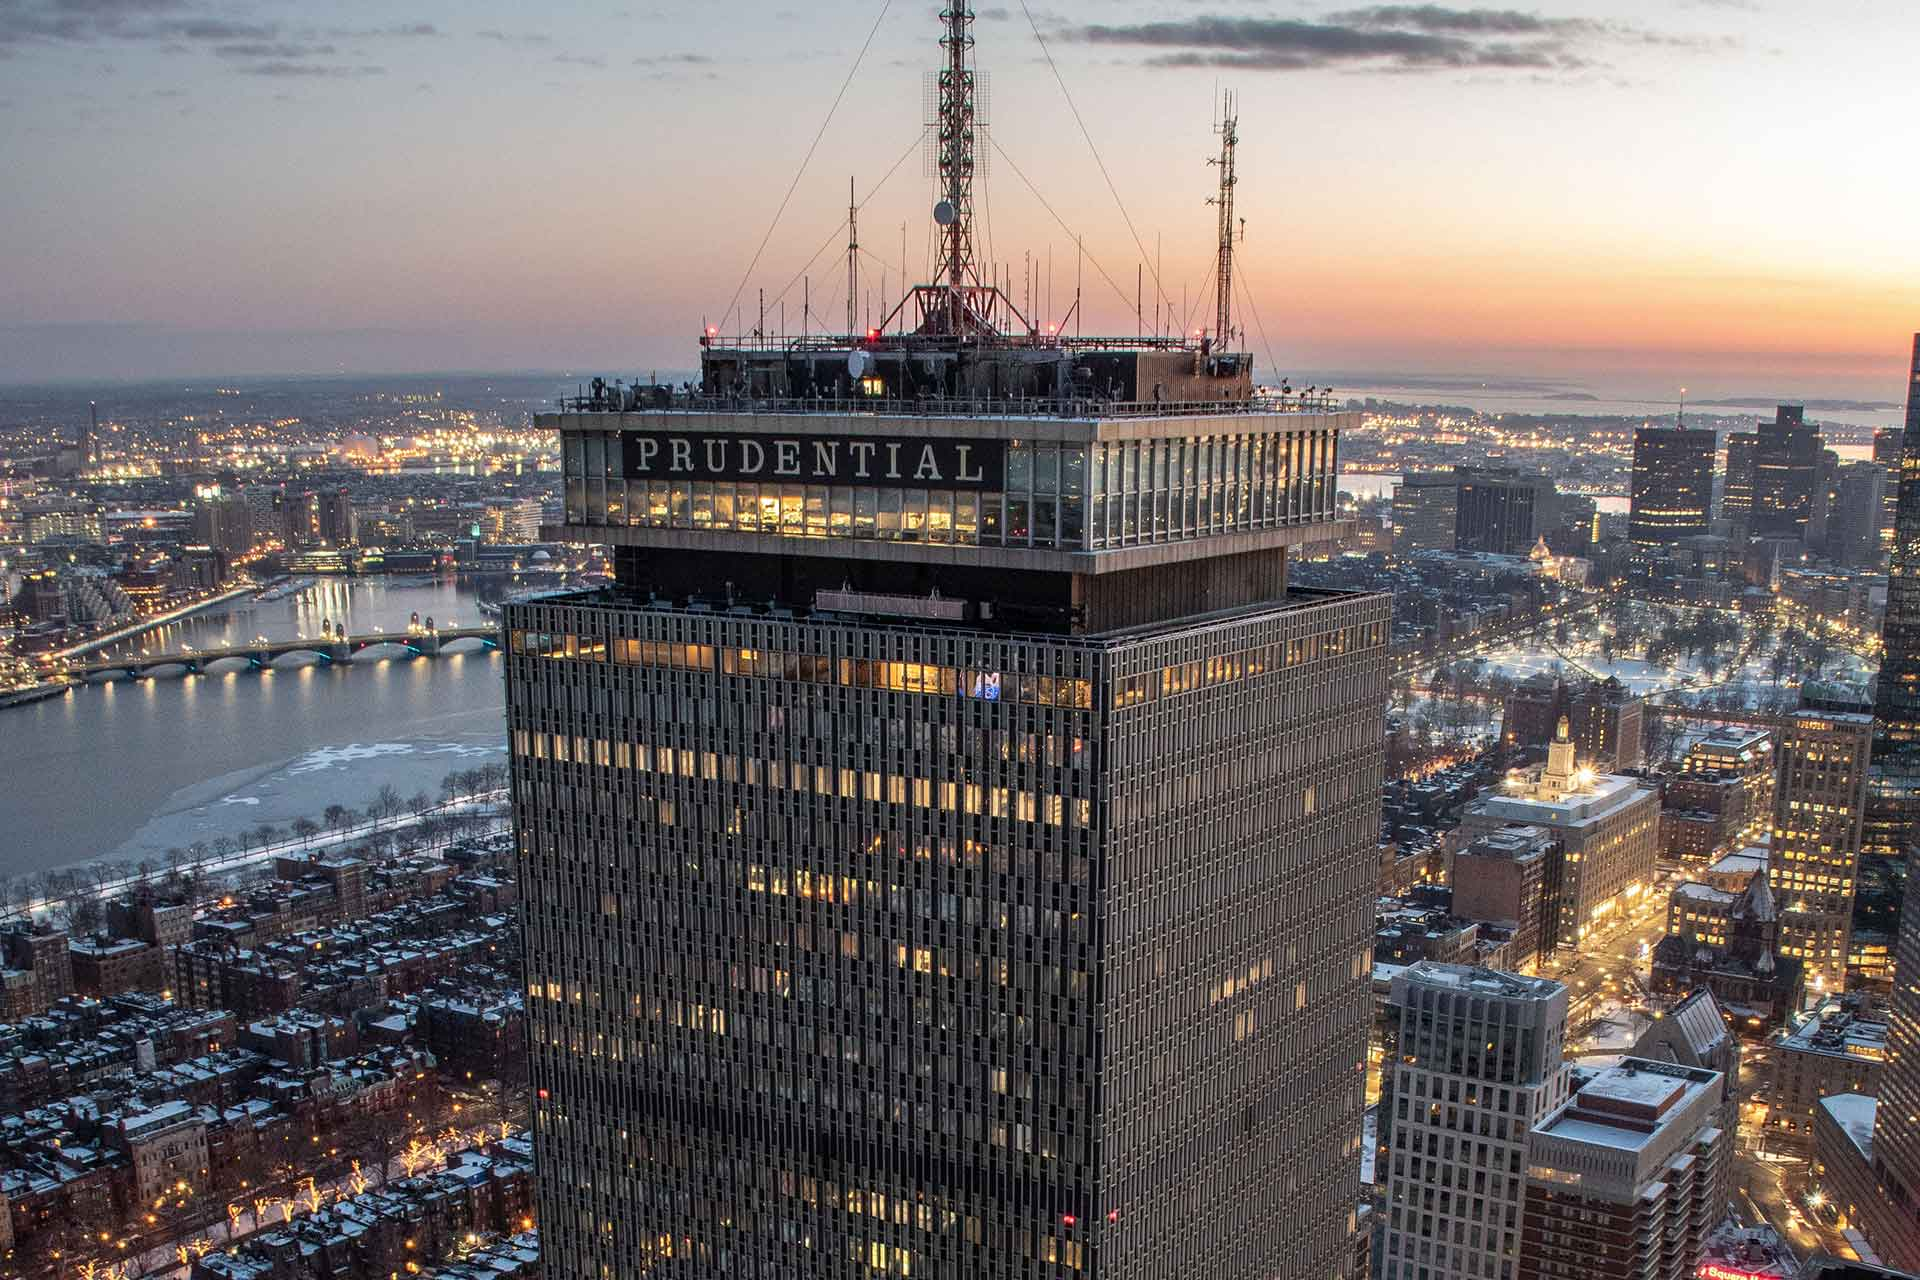 eb-5-regional-centers-massachusetts-prudential